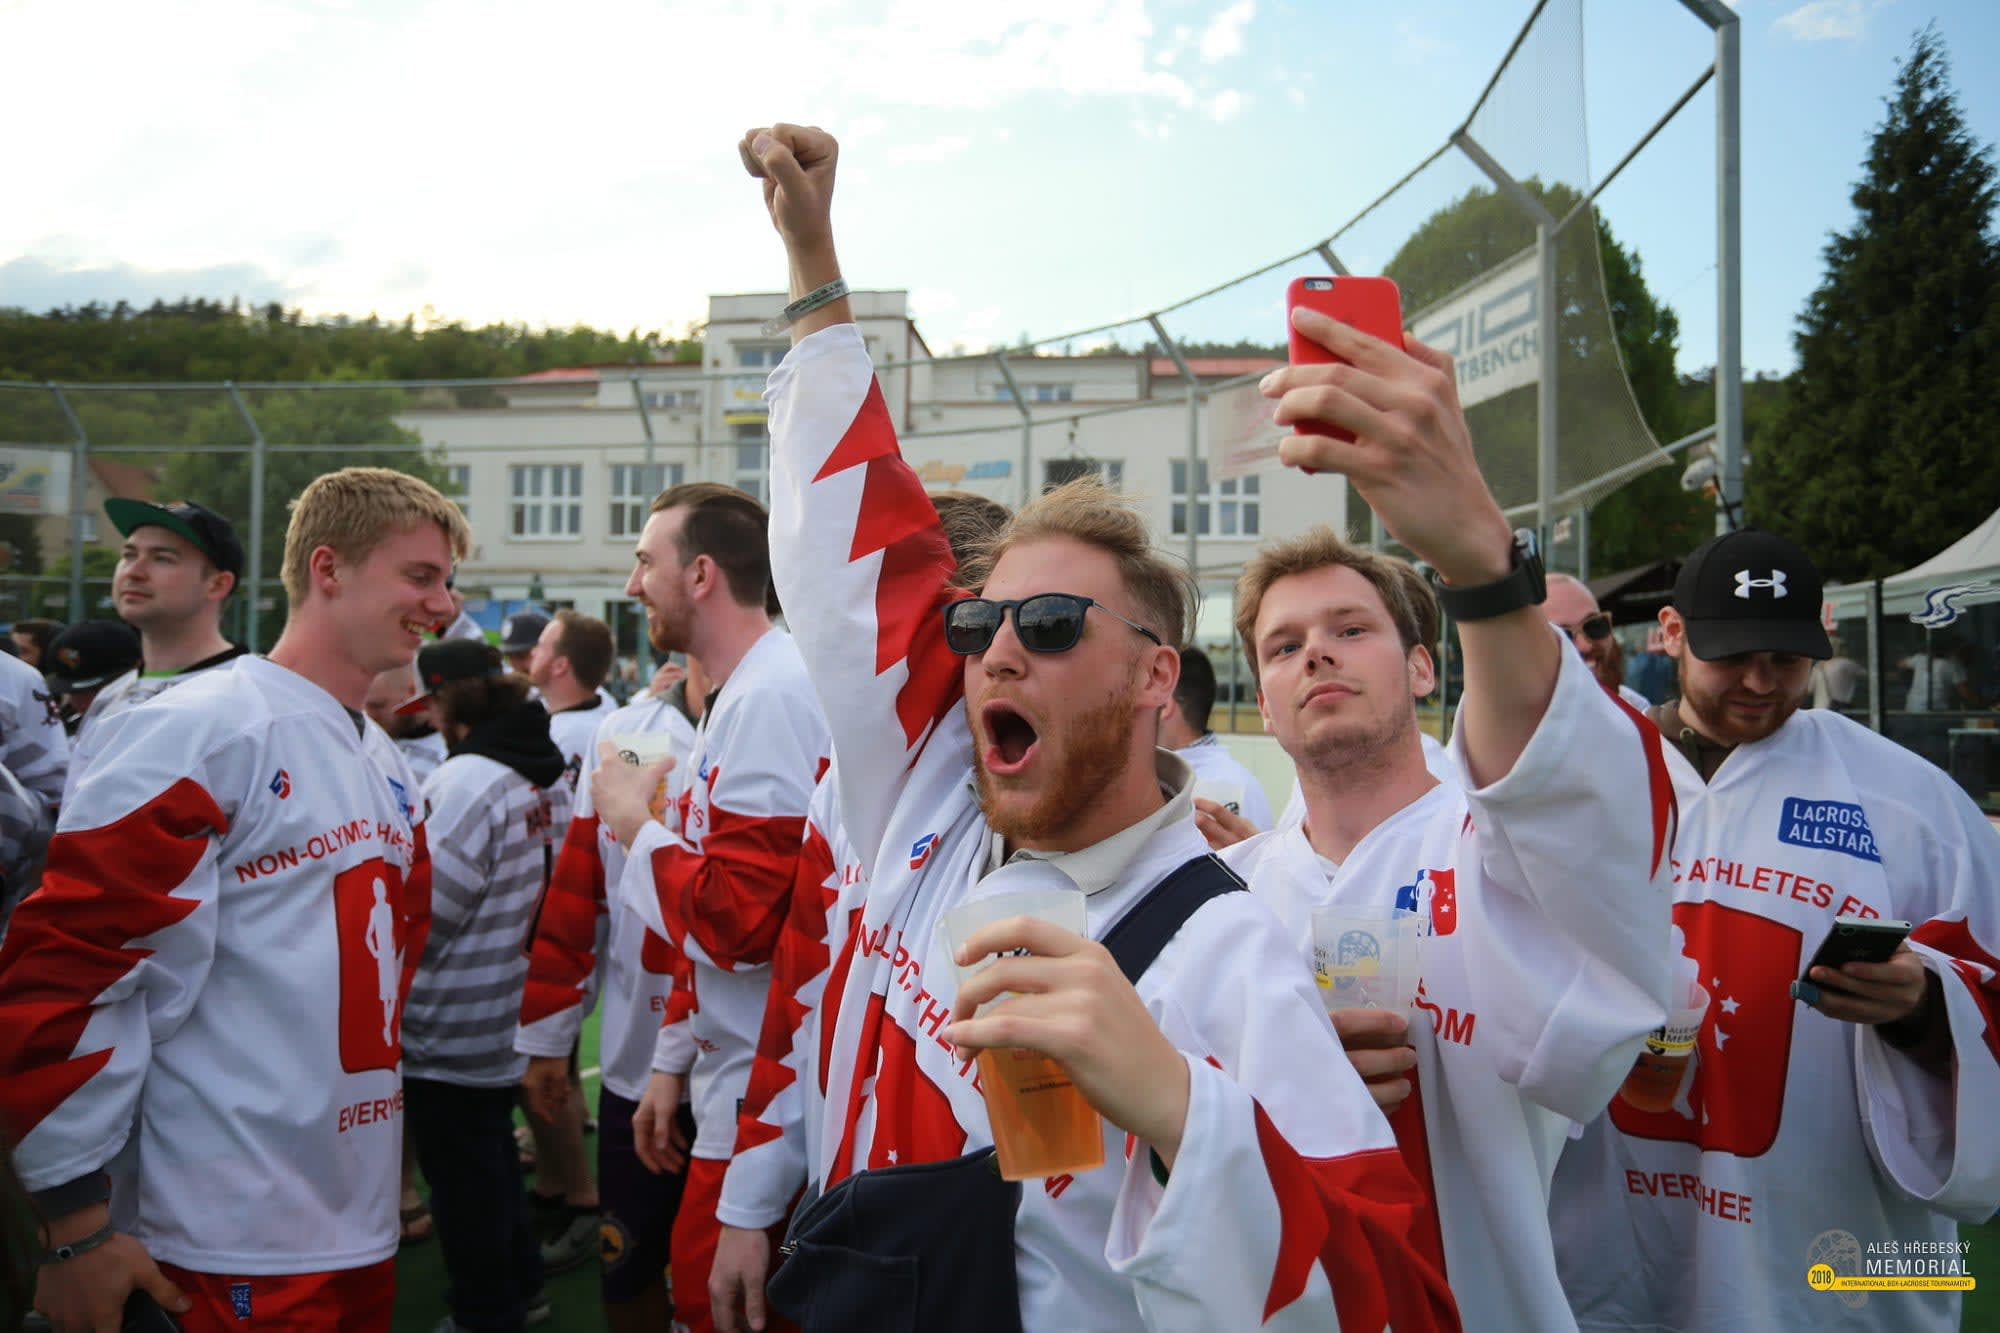 Ales Hrebesky Memorial 2018 LaxAllStars Non-Olympic Athletes from Everywhere